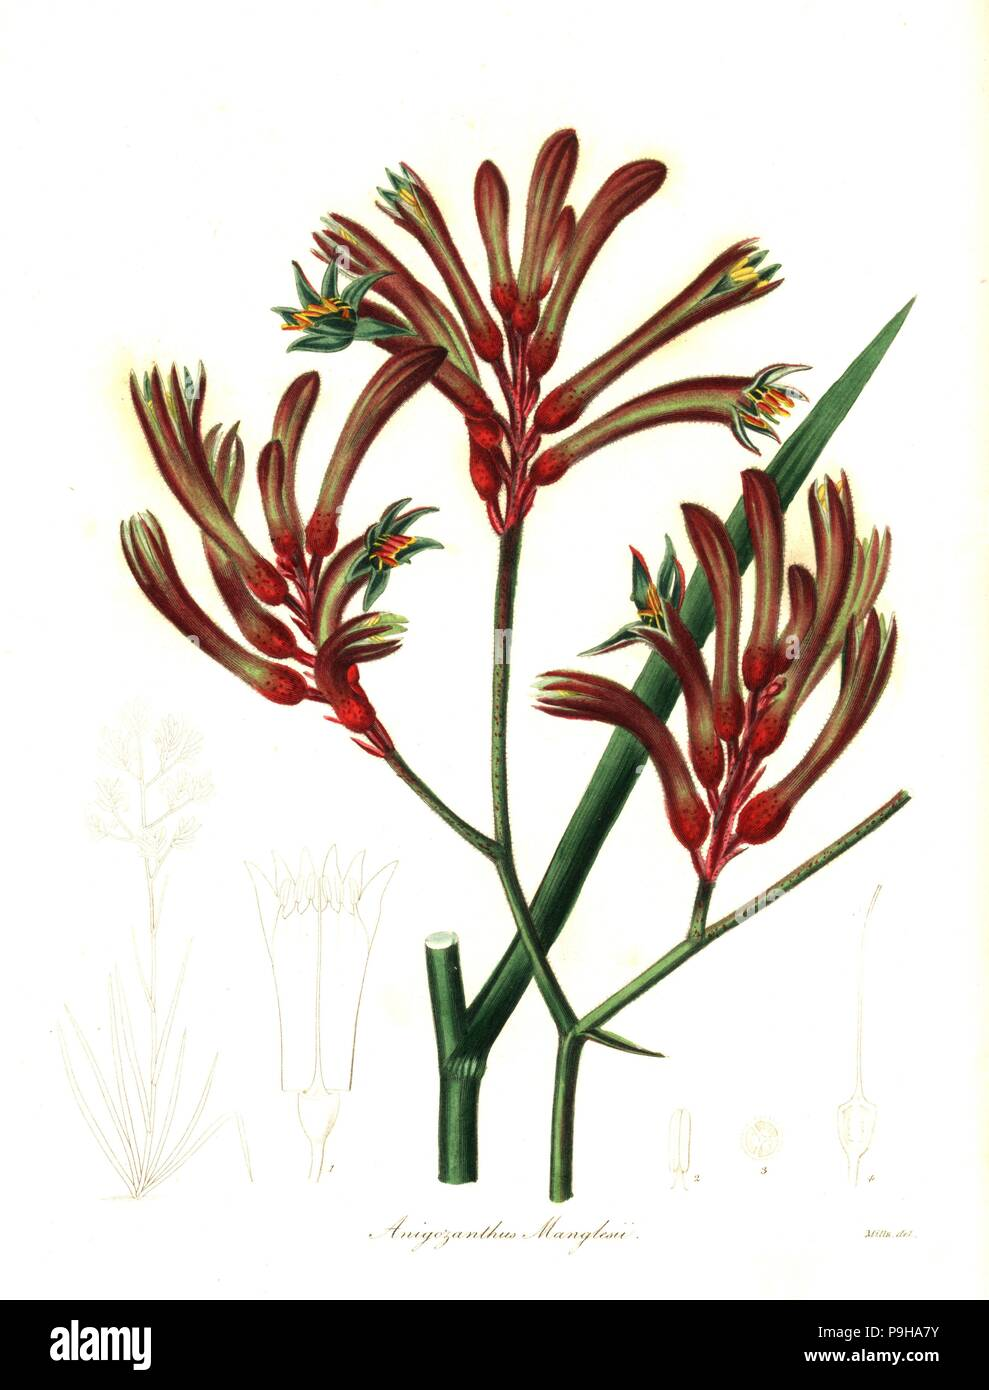 Red And Green Kangaroo Paw Anigozanthos Manglesii Mr Mangles Anigozanthus Anigozanthus Manglesii Handcoloured Copperplate Engraving After A Botanical Illustration By Mills From Benjamin Maund And The Rev John Stevens Henslow S The Botanist